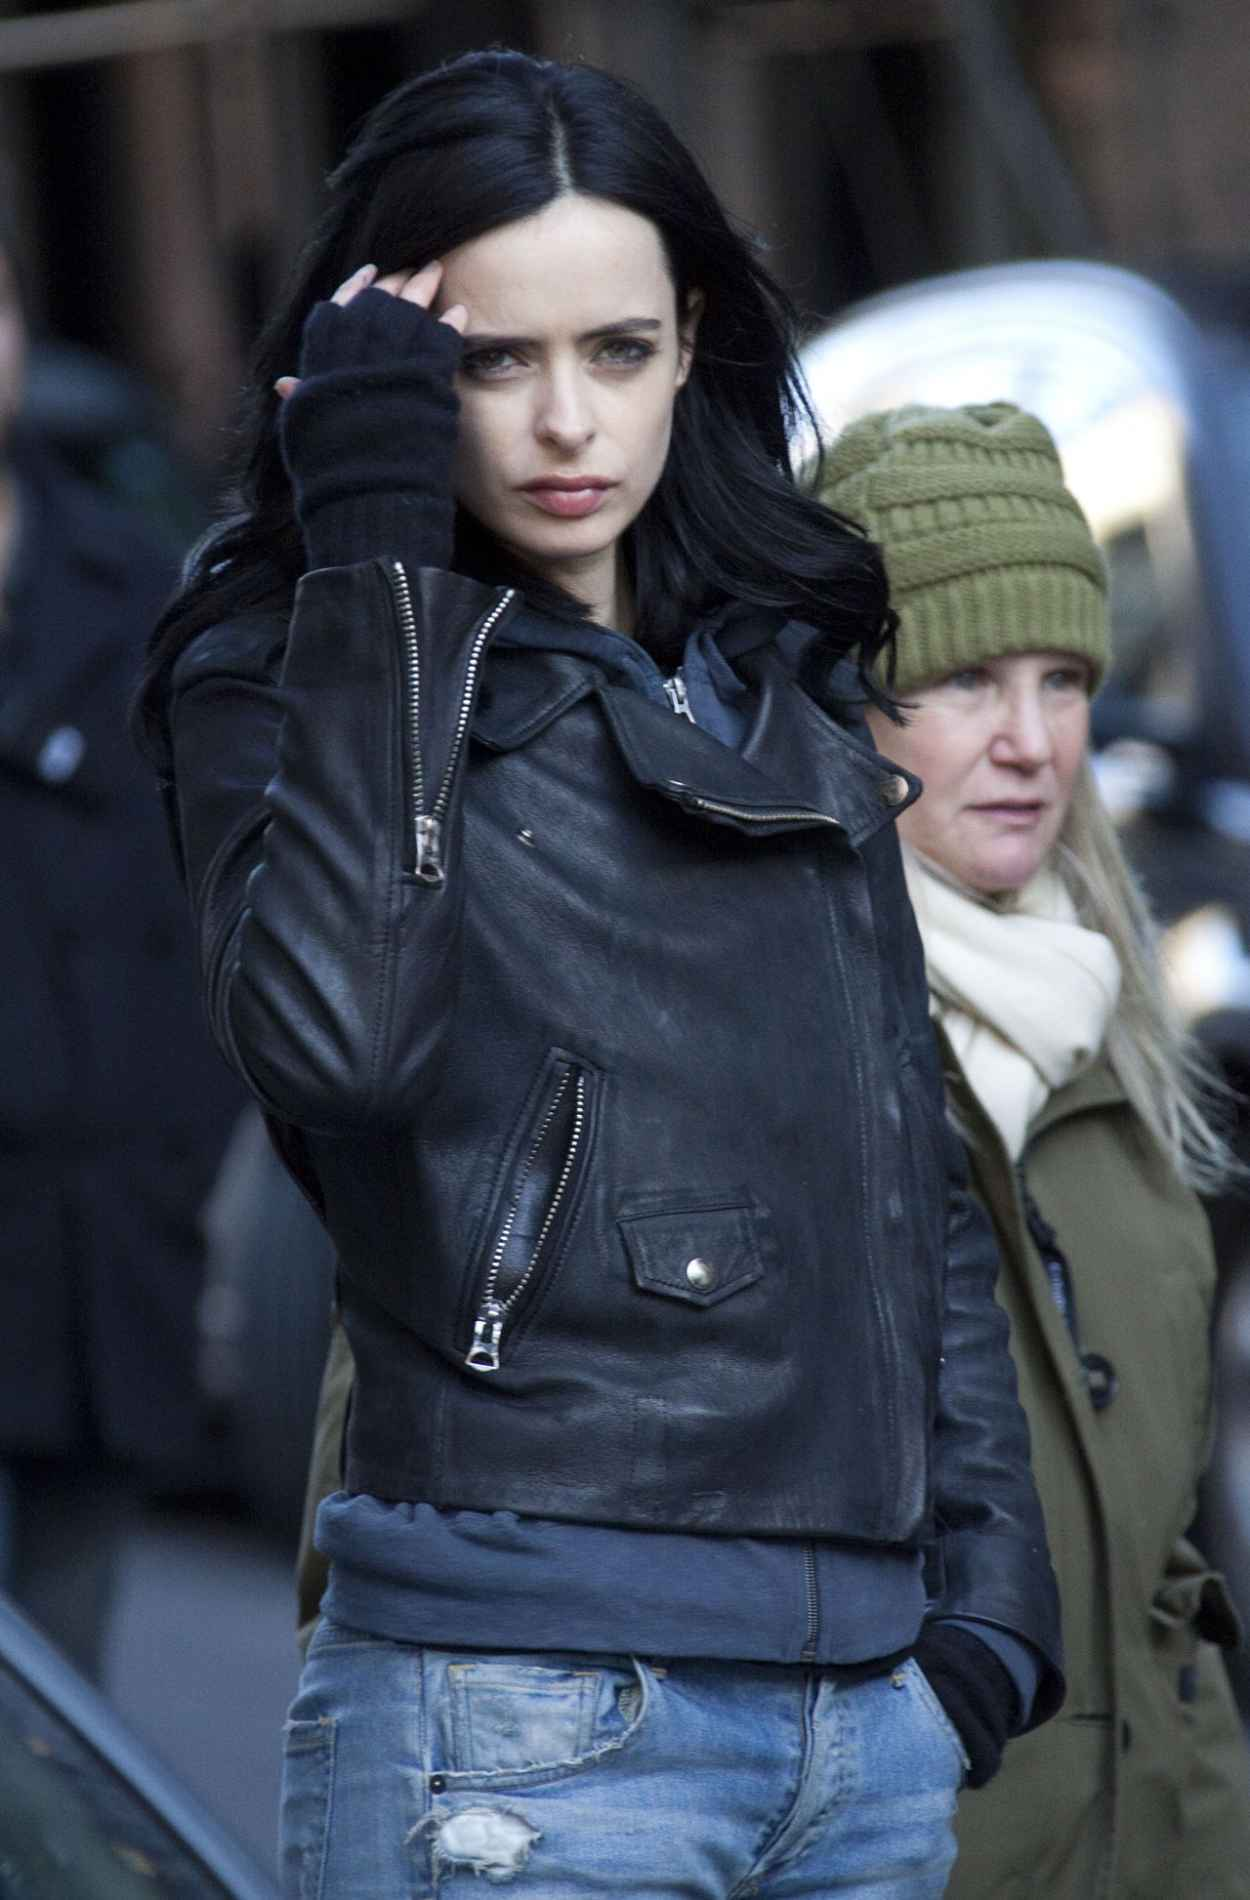 Krysten Ritter on the Set of A.K.A. Jessica Jones in New York City, March 2015-1